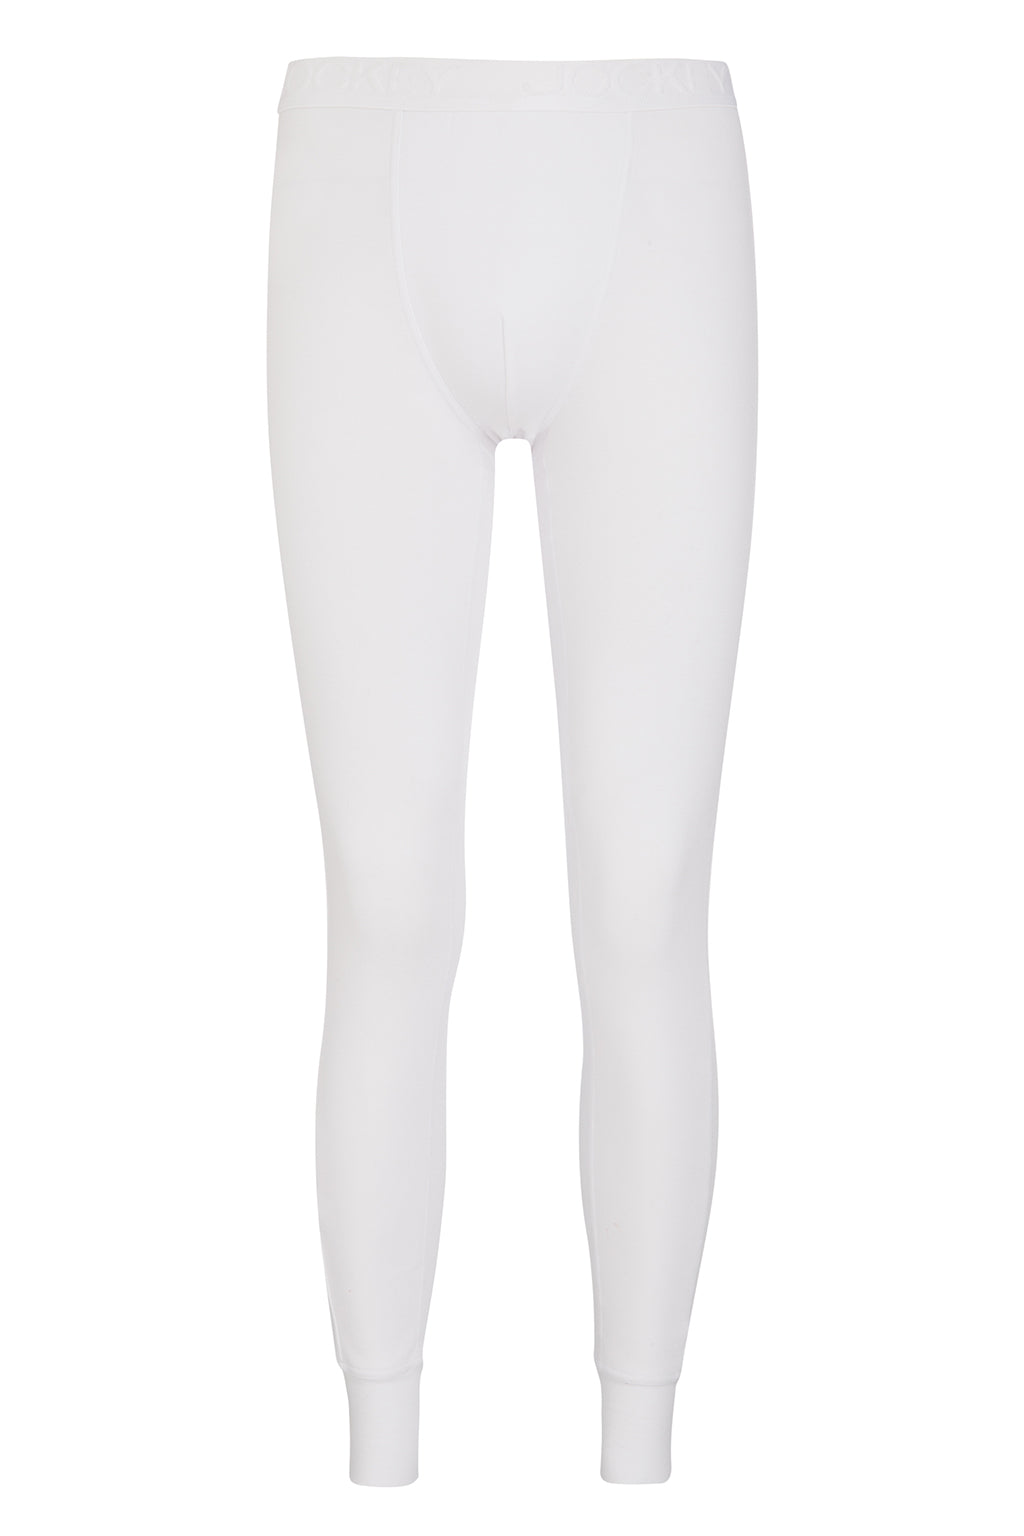 Jockey® Modern Thermal Long John